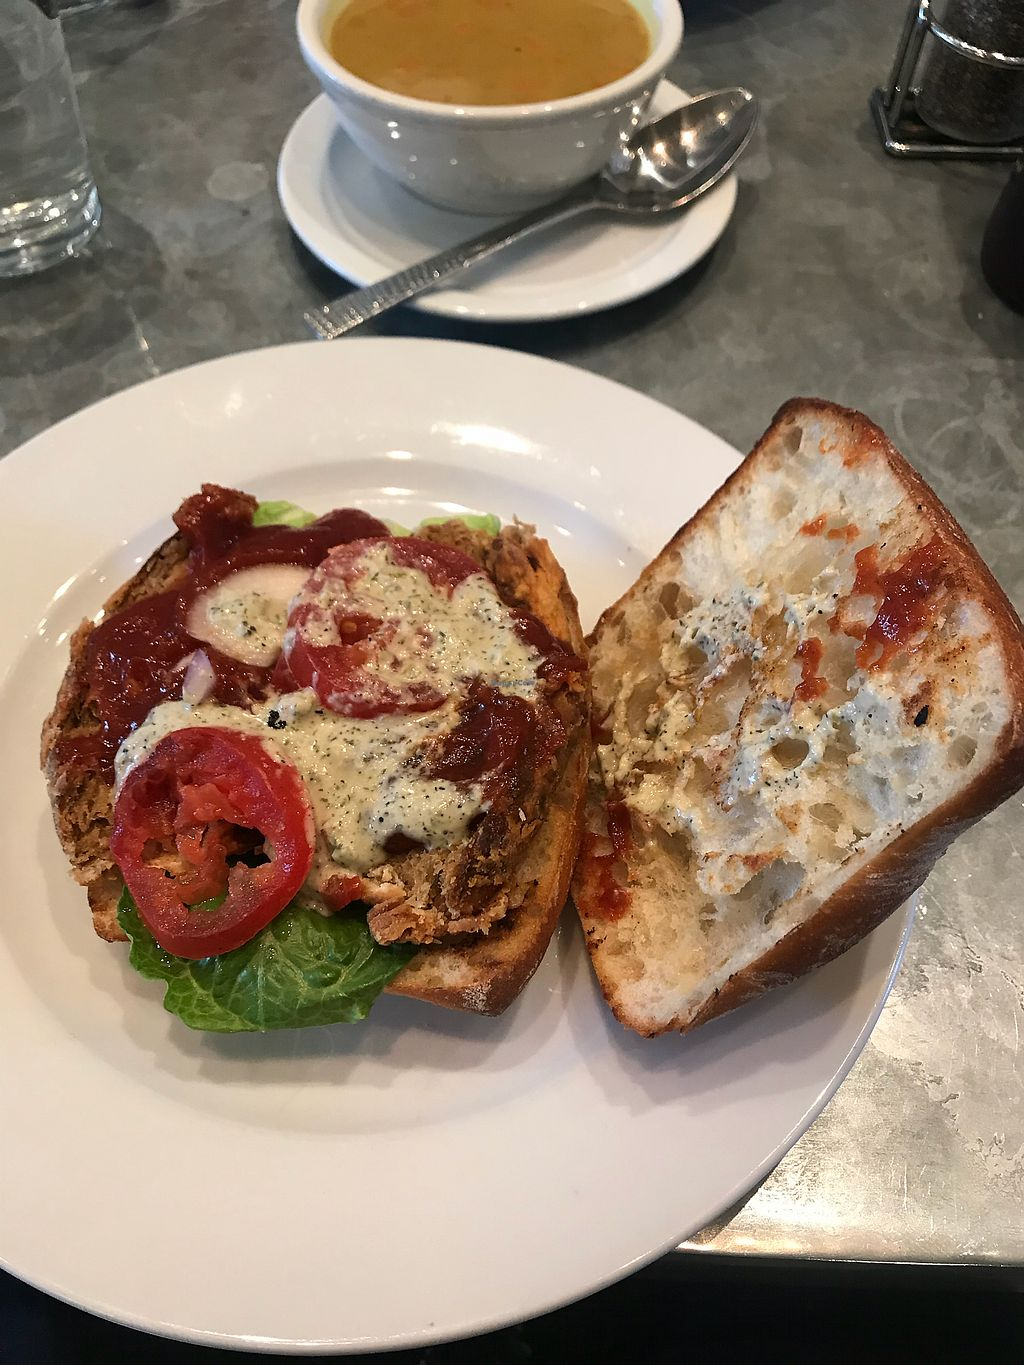 """Photo of Fare Well  by <a href=""""/members/profile/AdrianLondon"""">AdrianLondon</a> <br/>delish!!!! <br/> November 25, 2017  - <a href='/contact/abuse/image/75173/329066'>Report</a>"""